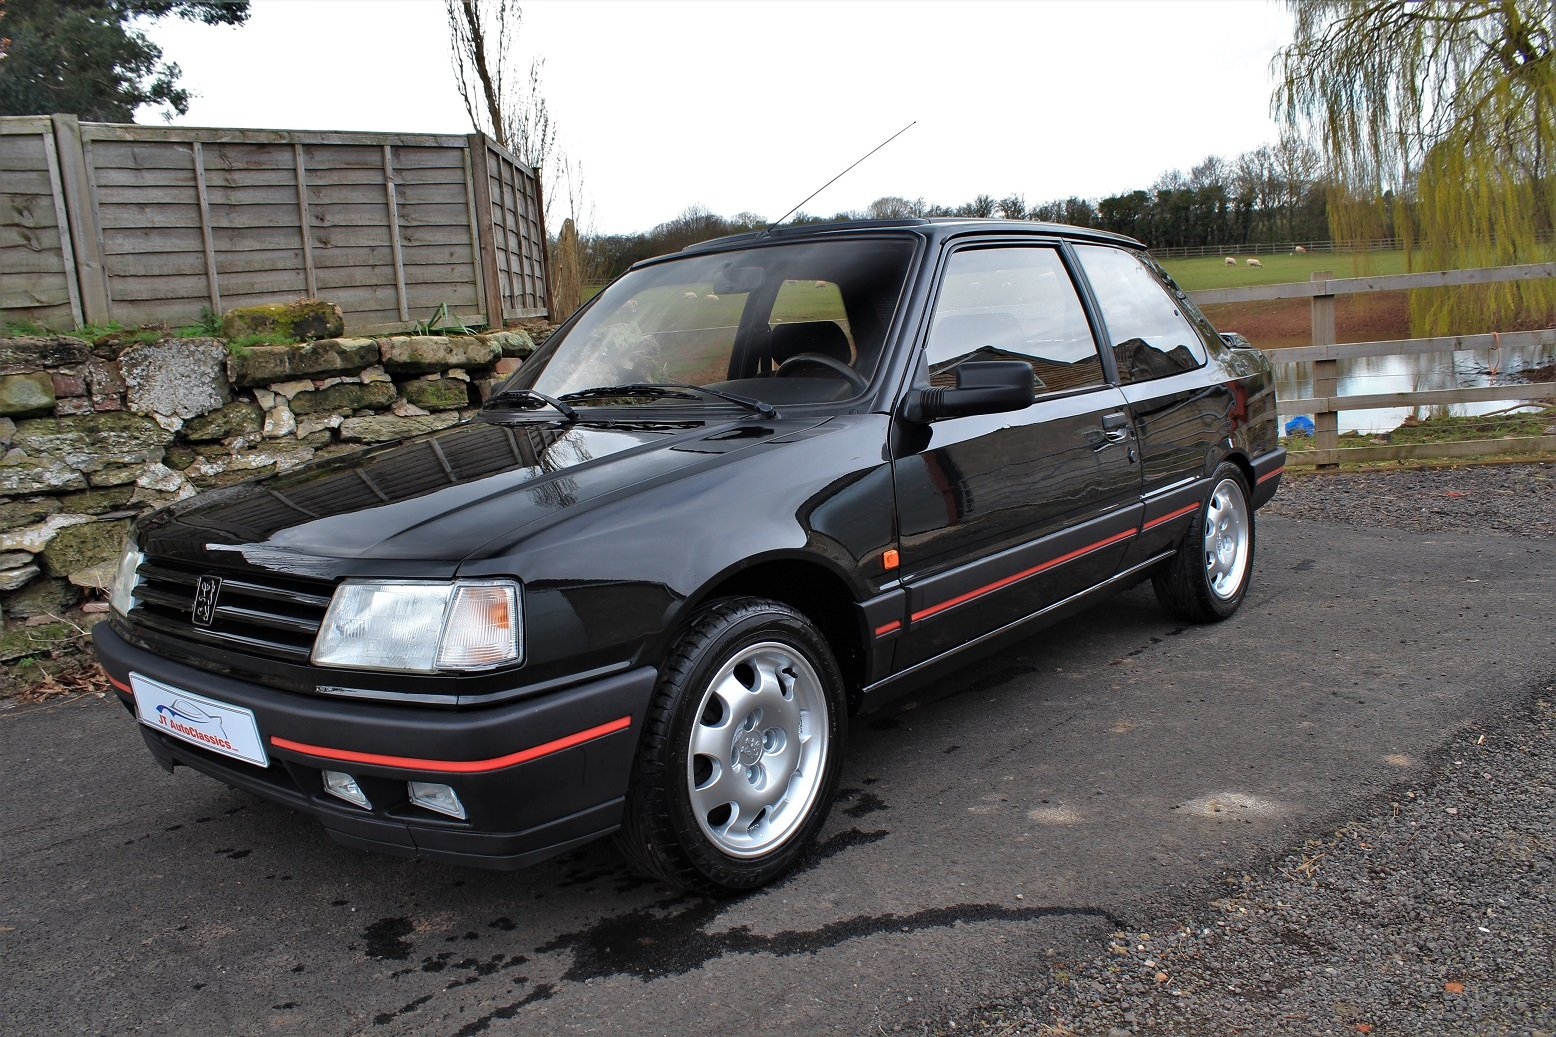 1990 Peugeot 309GTI 3dr LHD,54,903 miles from new For Sale (picture 1 of 6)